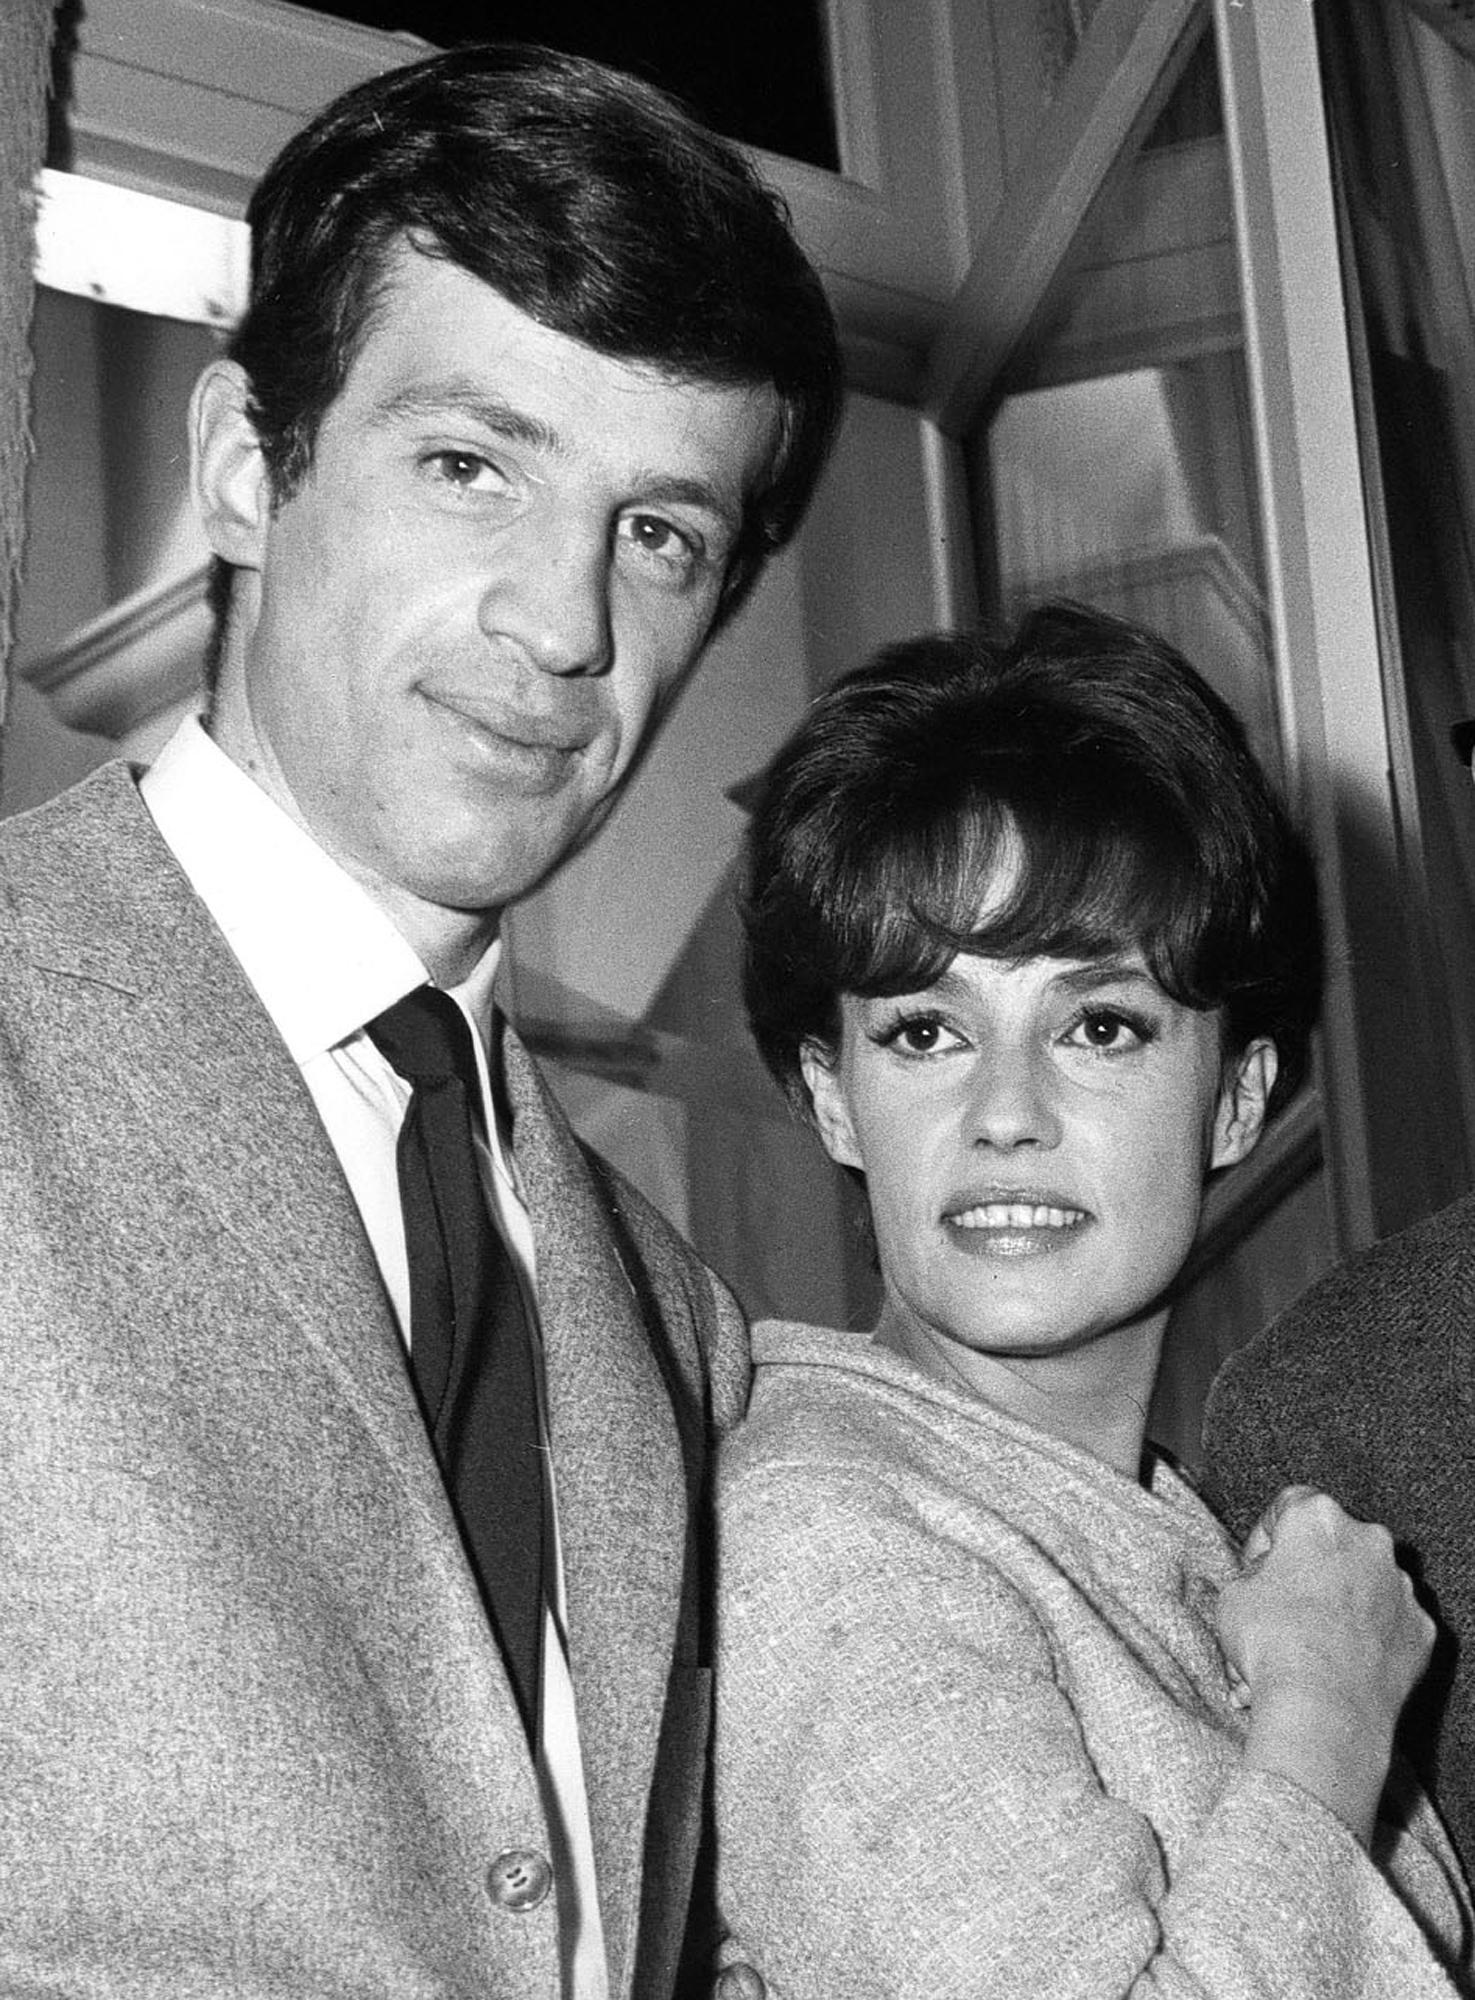 FILE - Undated file photo of Jeanne Moreau, right, and Jean Paul Belmondo and Jeanne Moreau at Billancourt studios near Paris. French actress Jeanne Moreau, whose seven-decade career included work with Francois Truffaut, Orson Welles, Wim Wenders and other acclaimed directors, has died aged 89 it was announced Monday July 31, 2017. (AP Photo/File)